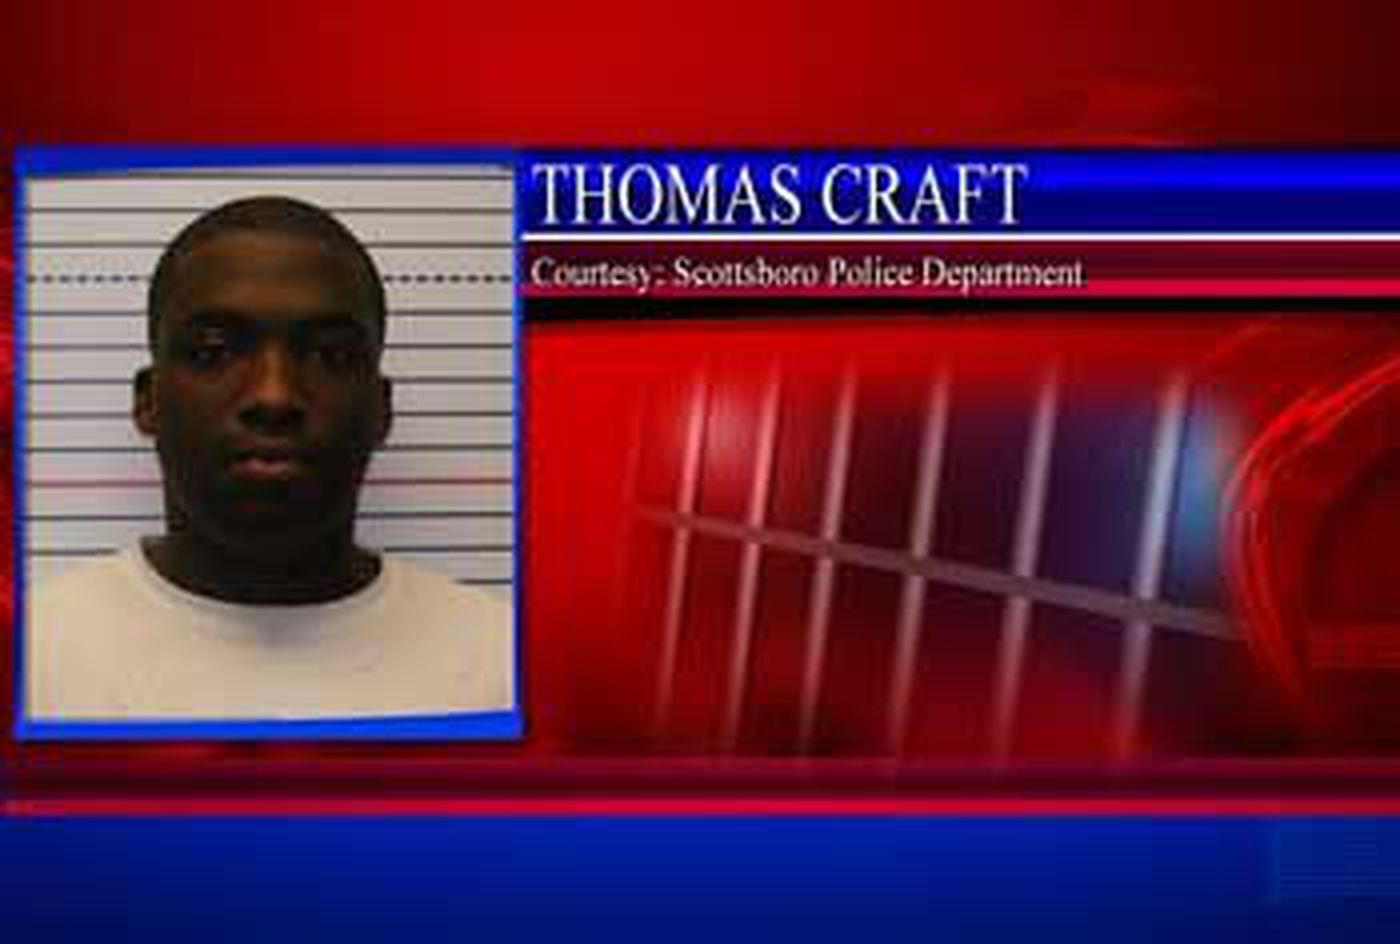 Scottsboro man arrested for sexually abusing young girl